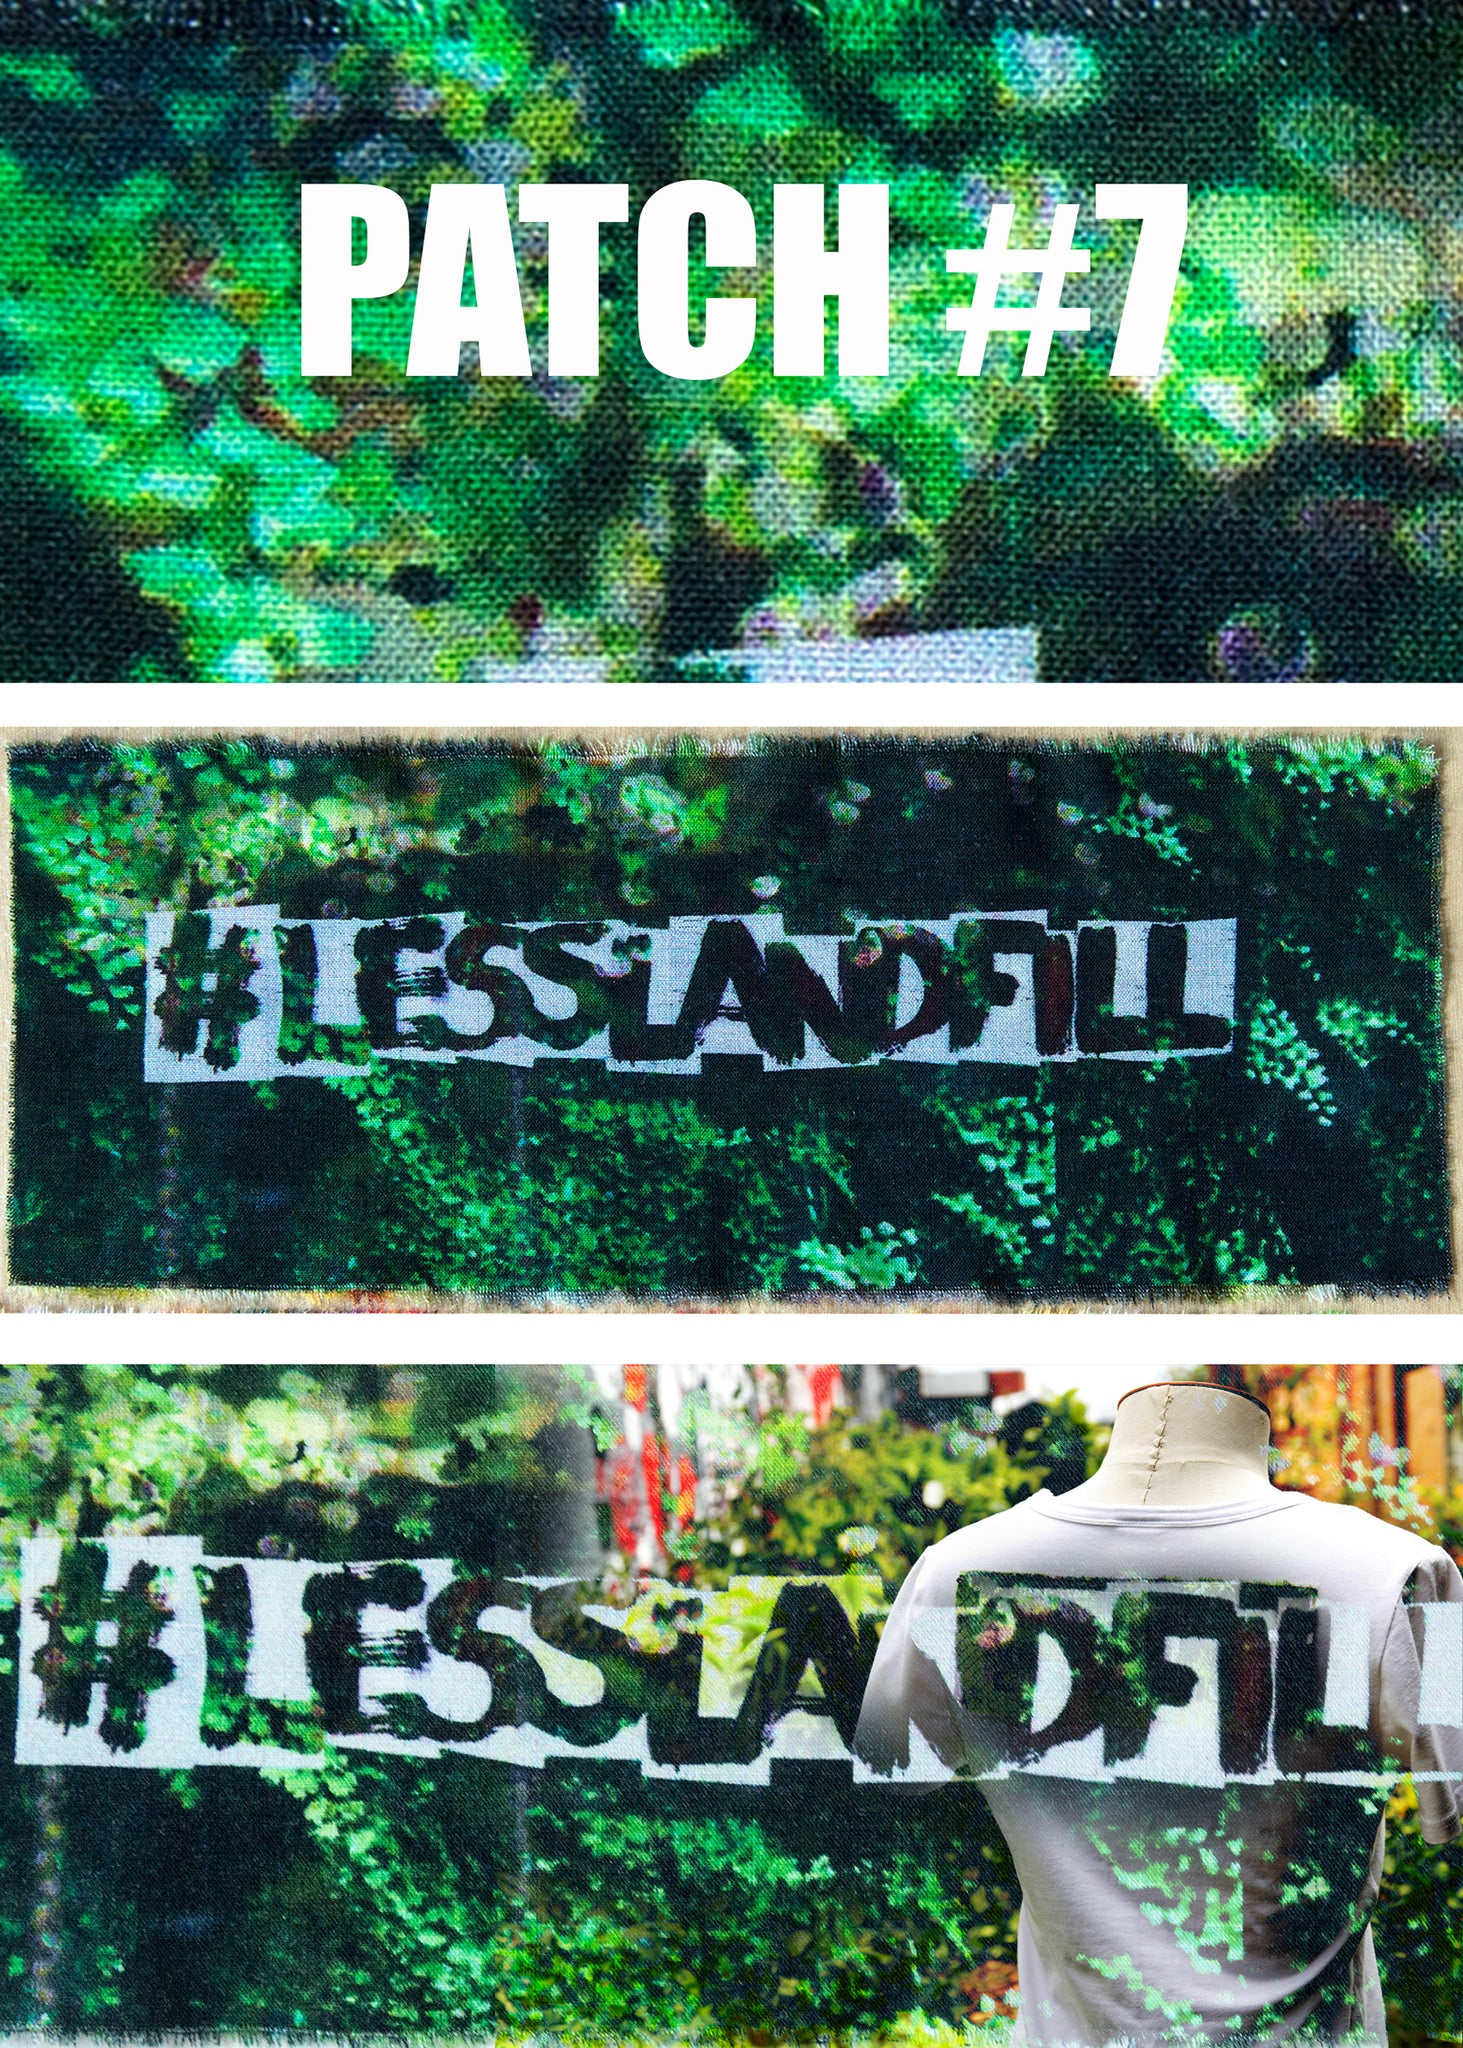 #lesslandfill Patch 7 details -ethical fashion, sustainable fashion, designer clothes, plus size clothing, textile print clothing, luxury online fashion, slow fashion